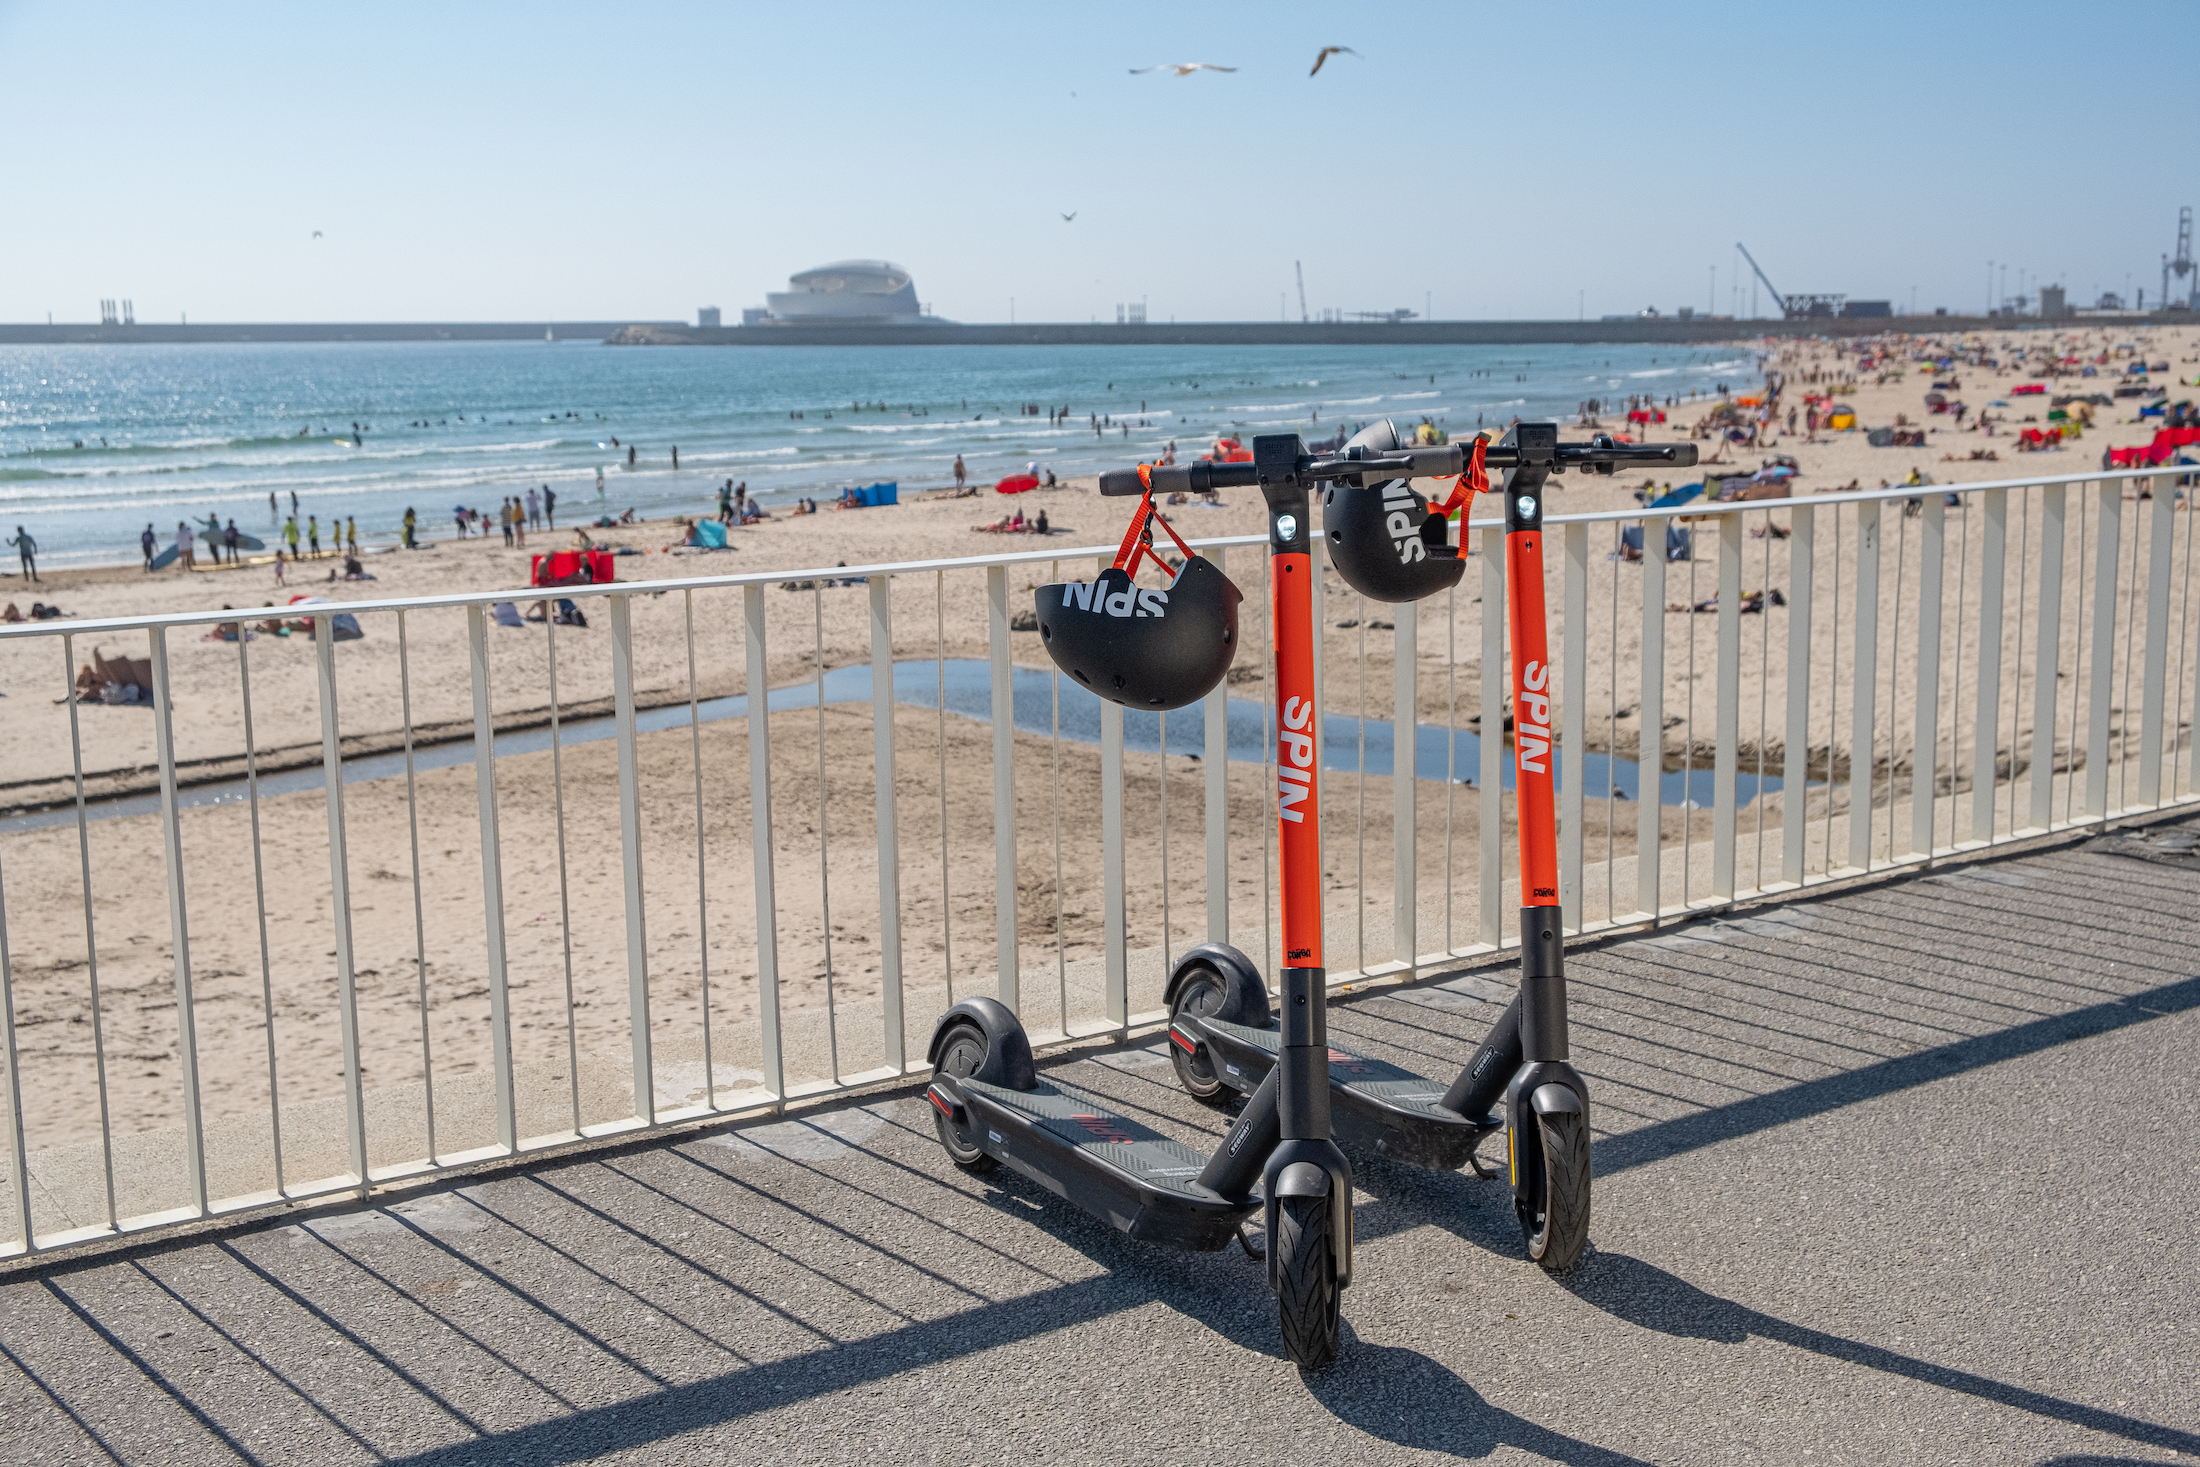 Two Spin scooters with helmets hanging from their handles are parked in front of a beach.